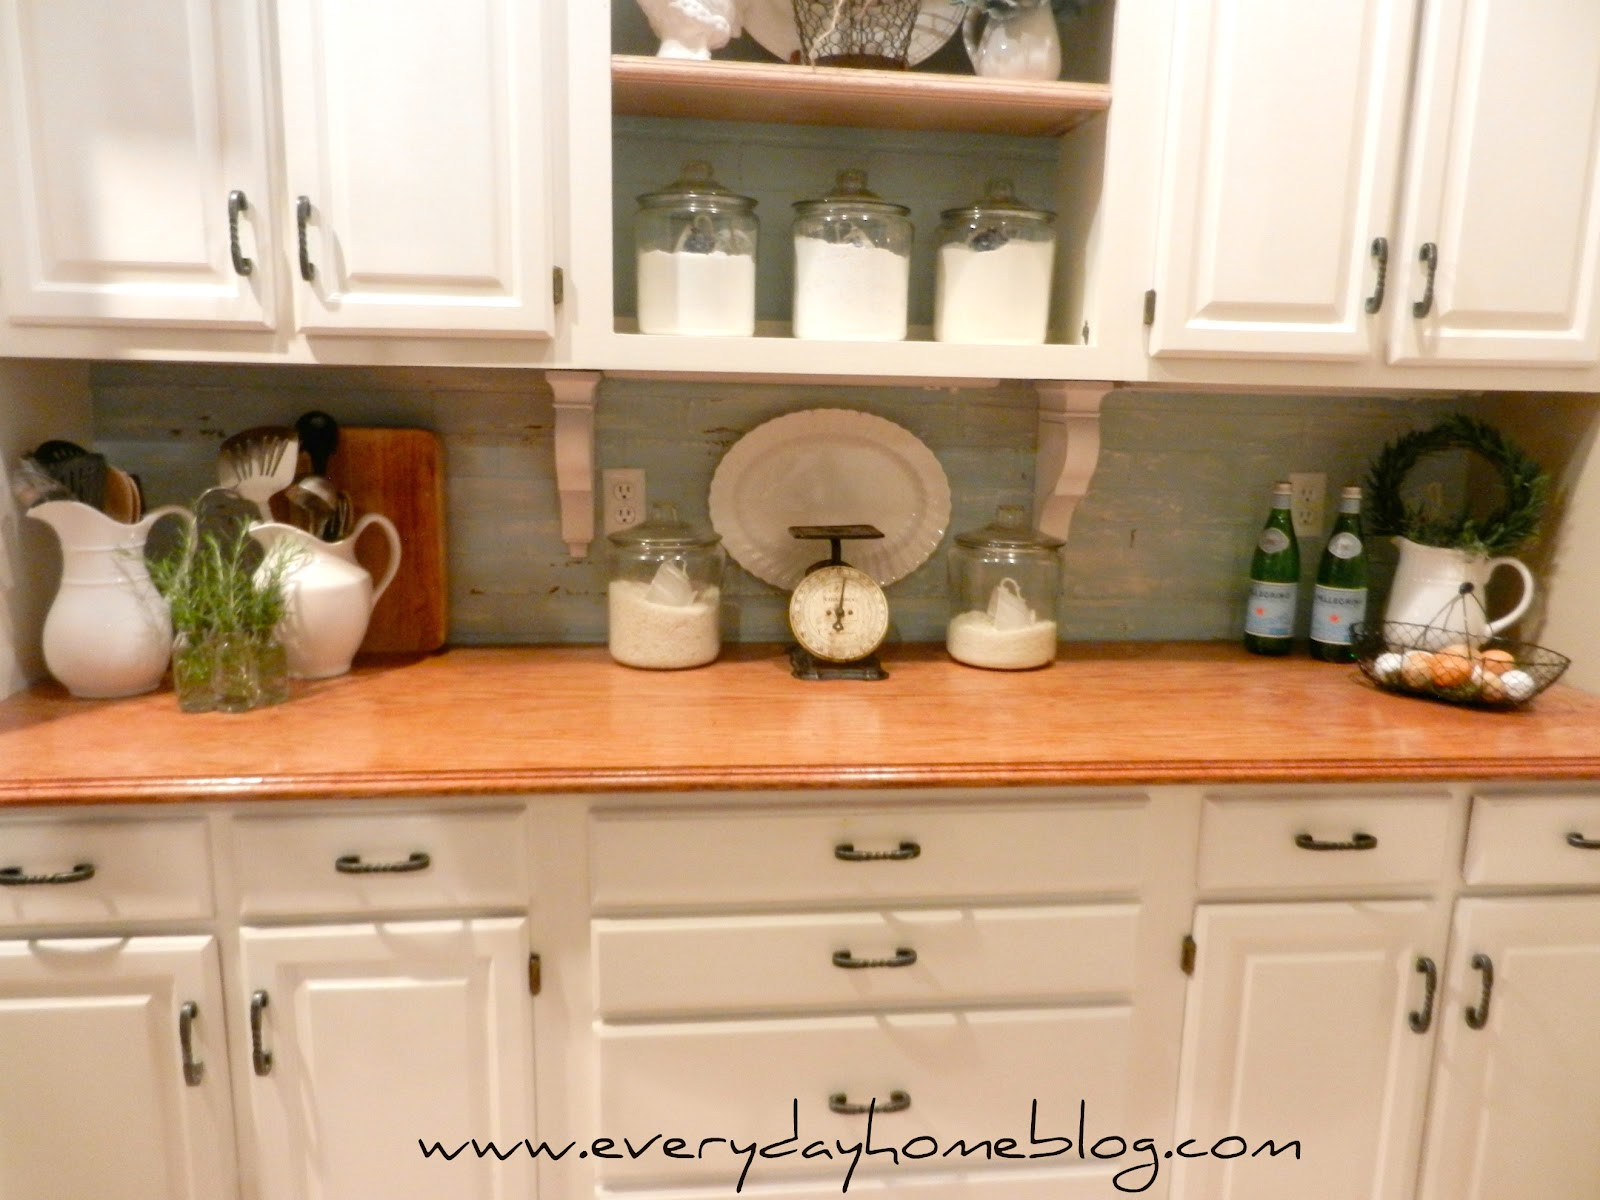 Painted Brick Backsplash